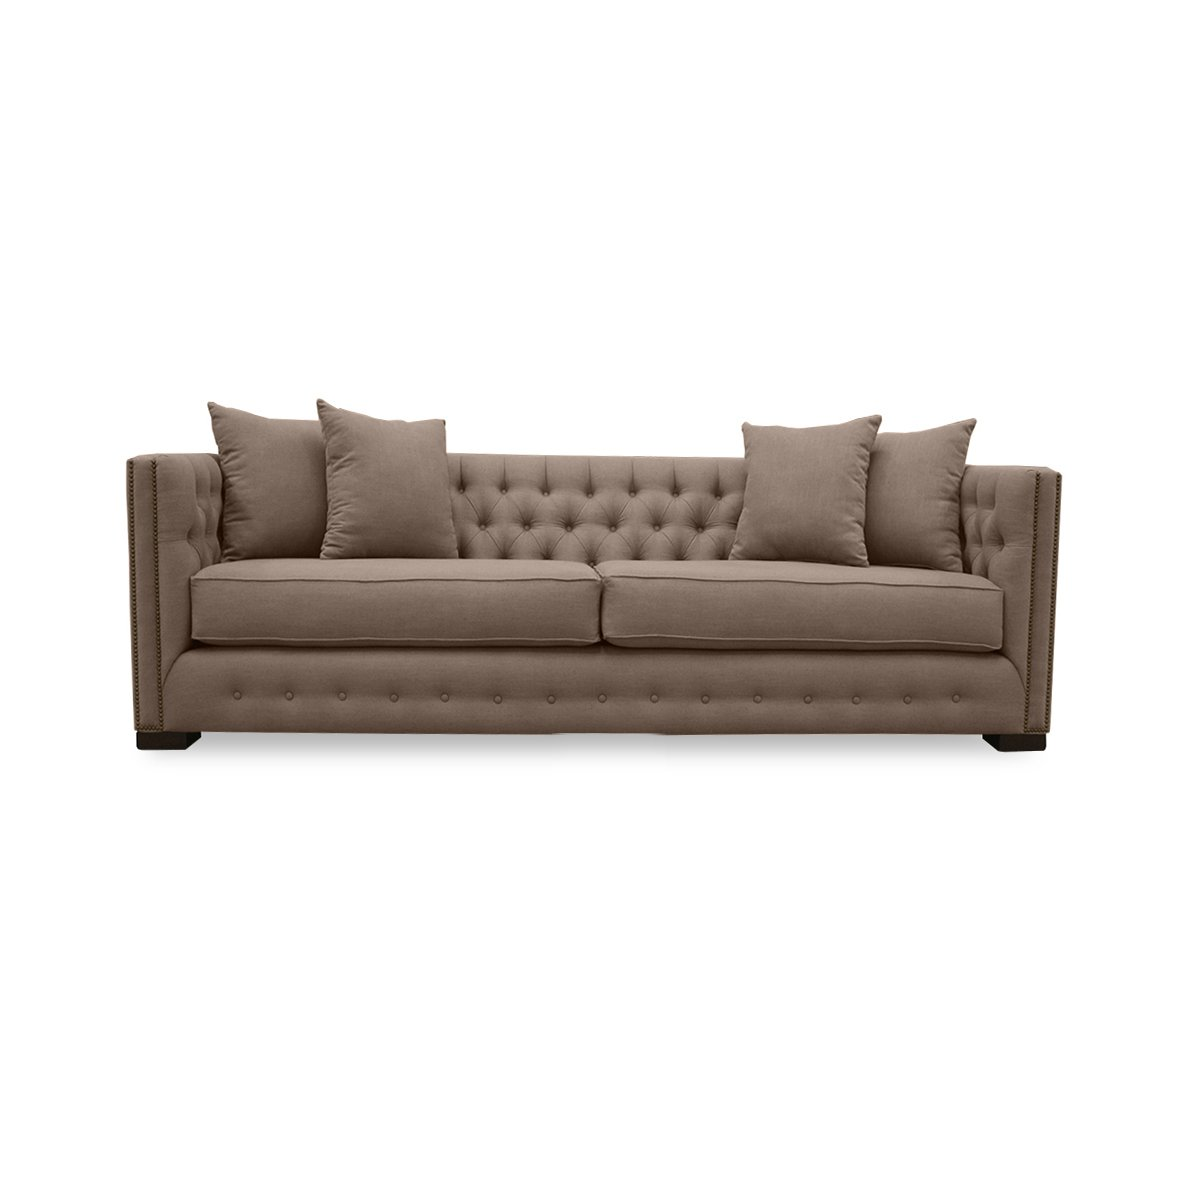 South Cone Home Dublin Sofa, 94